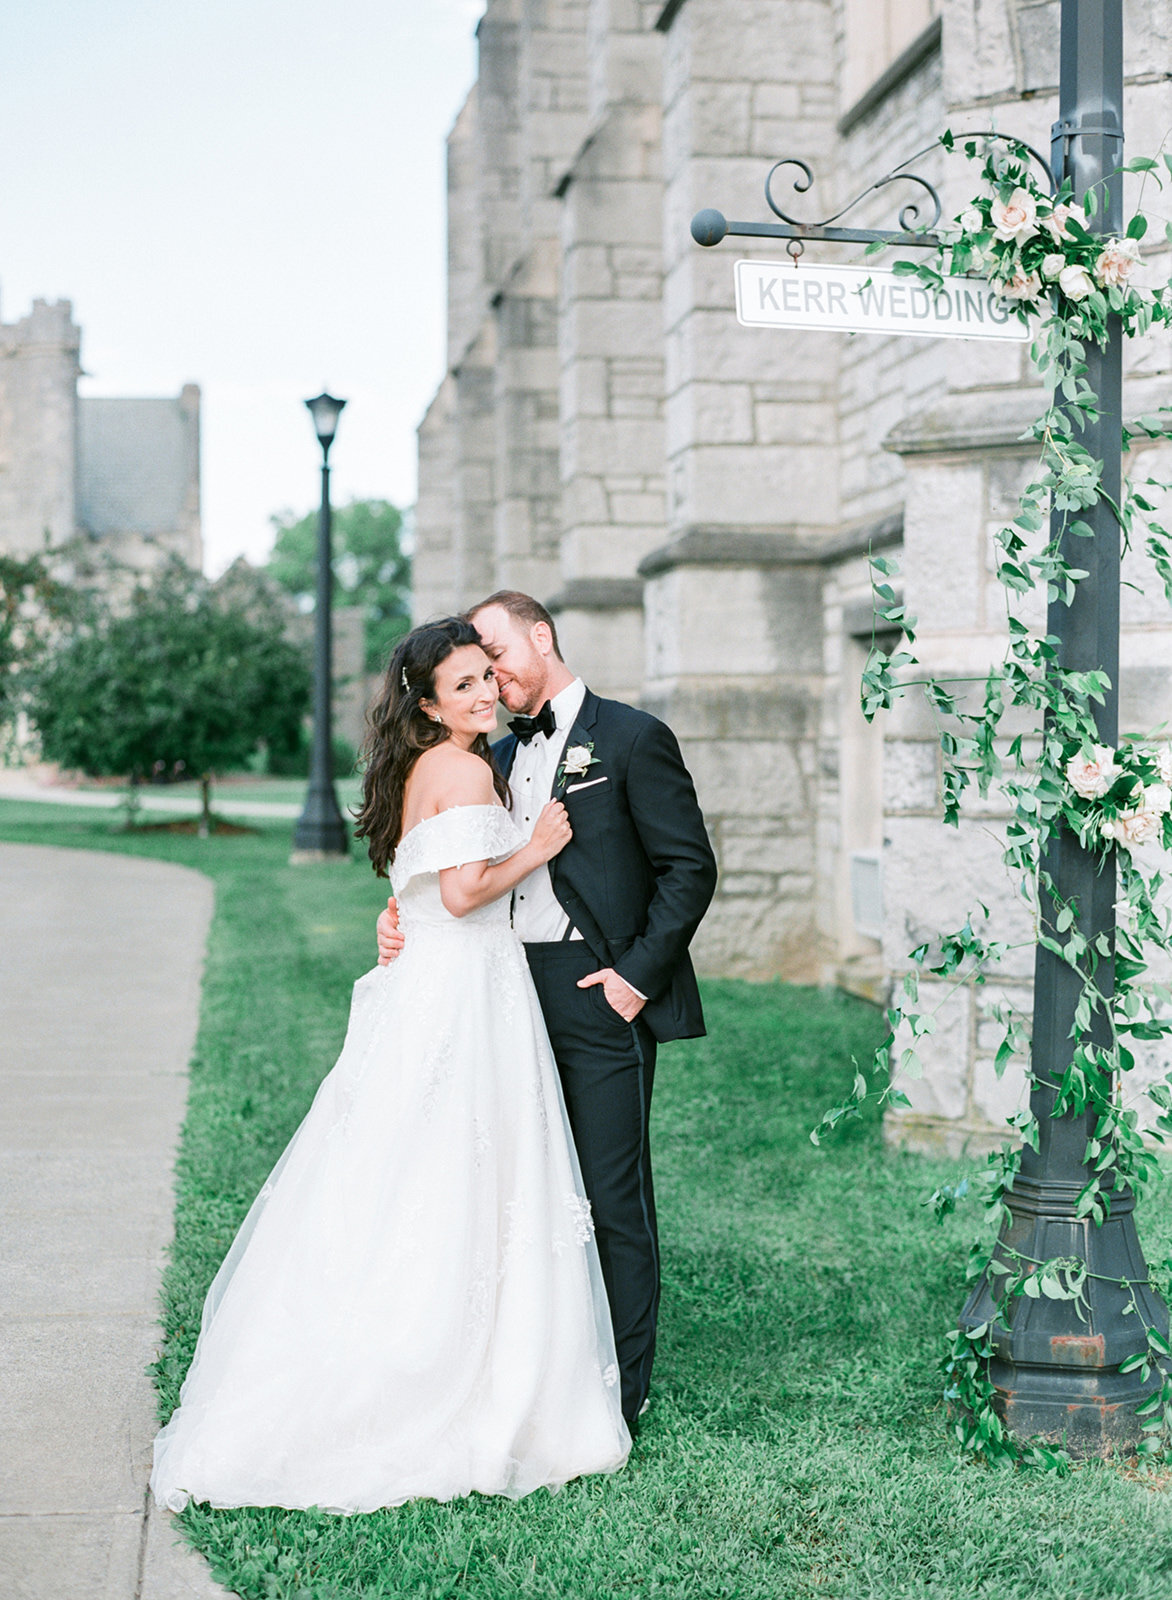 Meredith_Chris_Wedding_8.18.2018-889